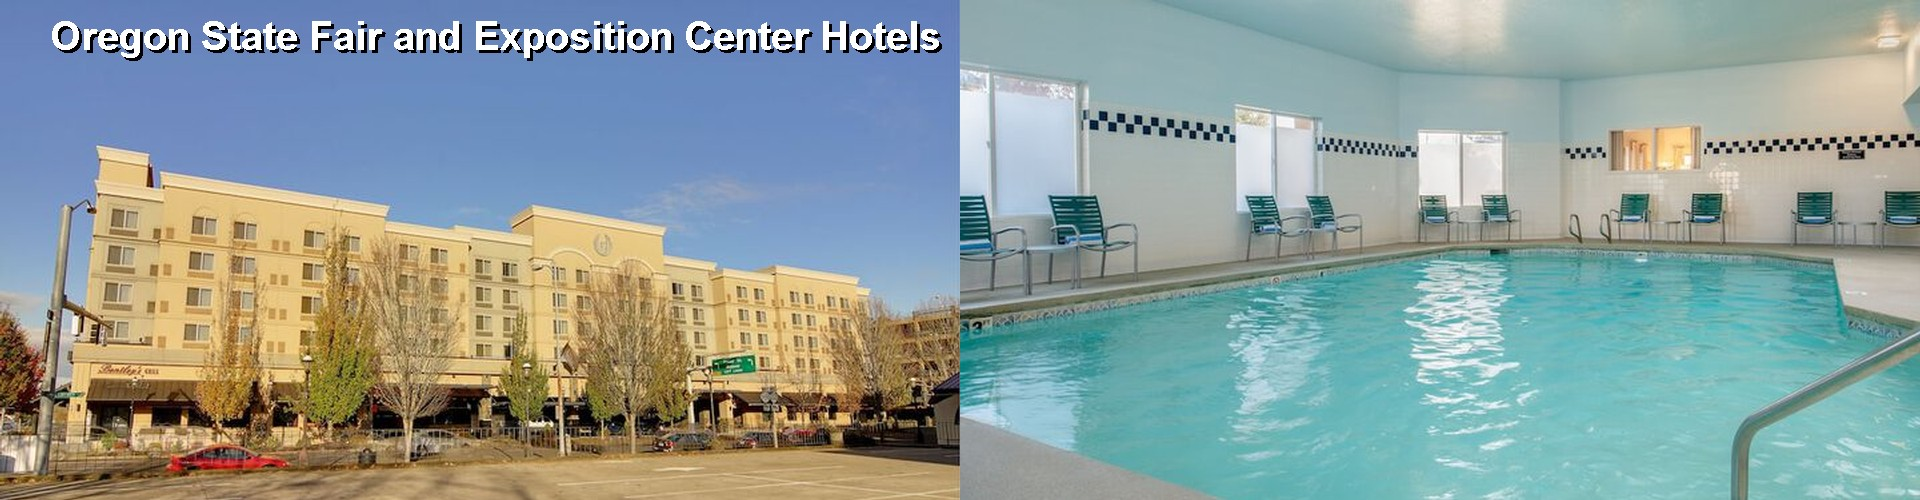 2 Best Hotels near Oregon State Fair and Exposition Center